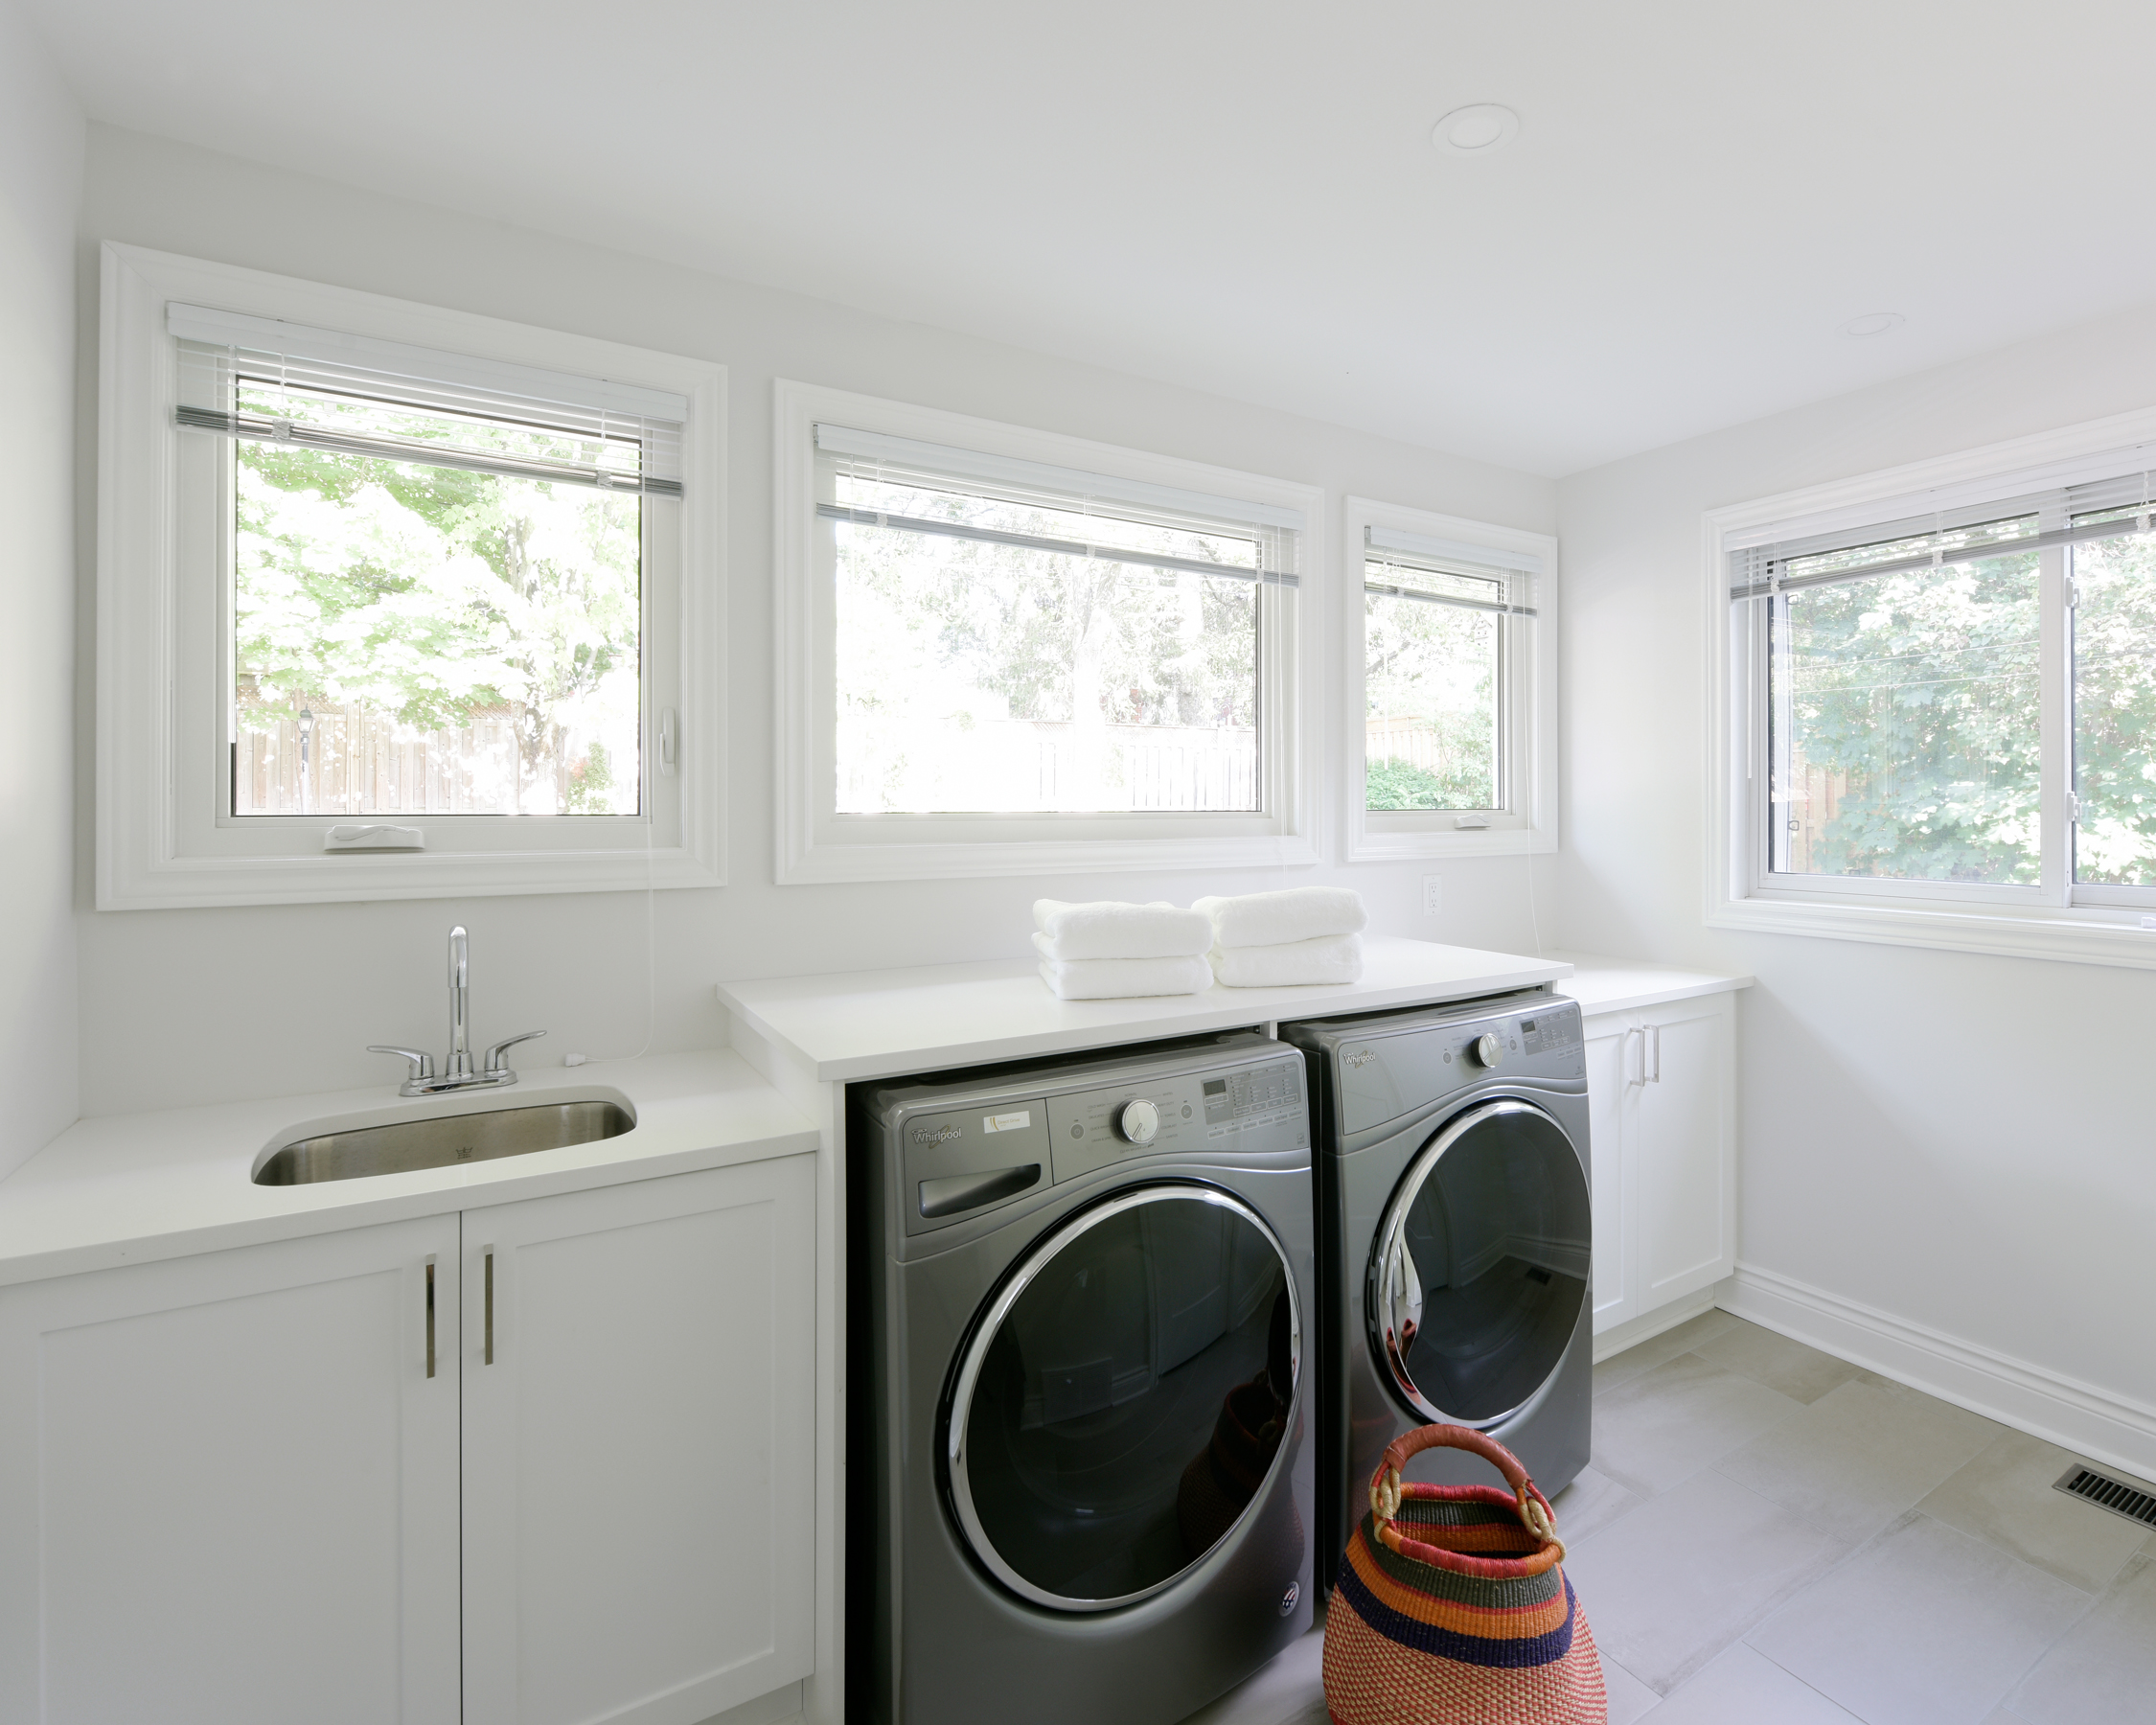 Renovating Design - Thinking of renovating a basement, laundry room or another space in your home? Contact us to discuss how we can help.